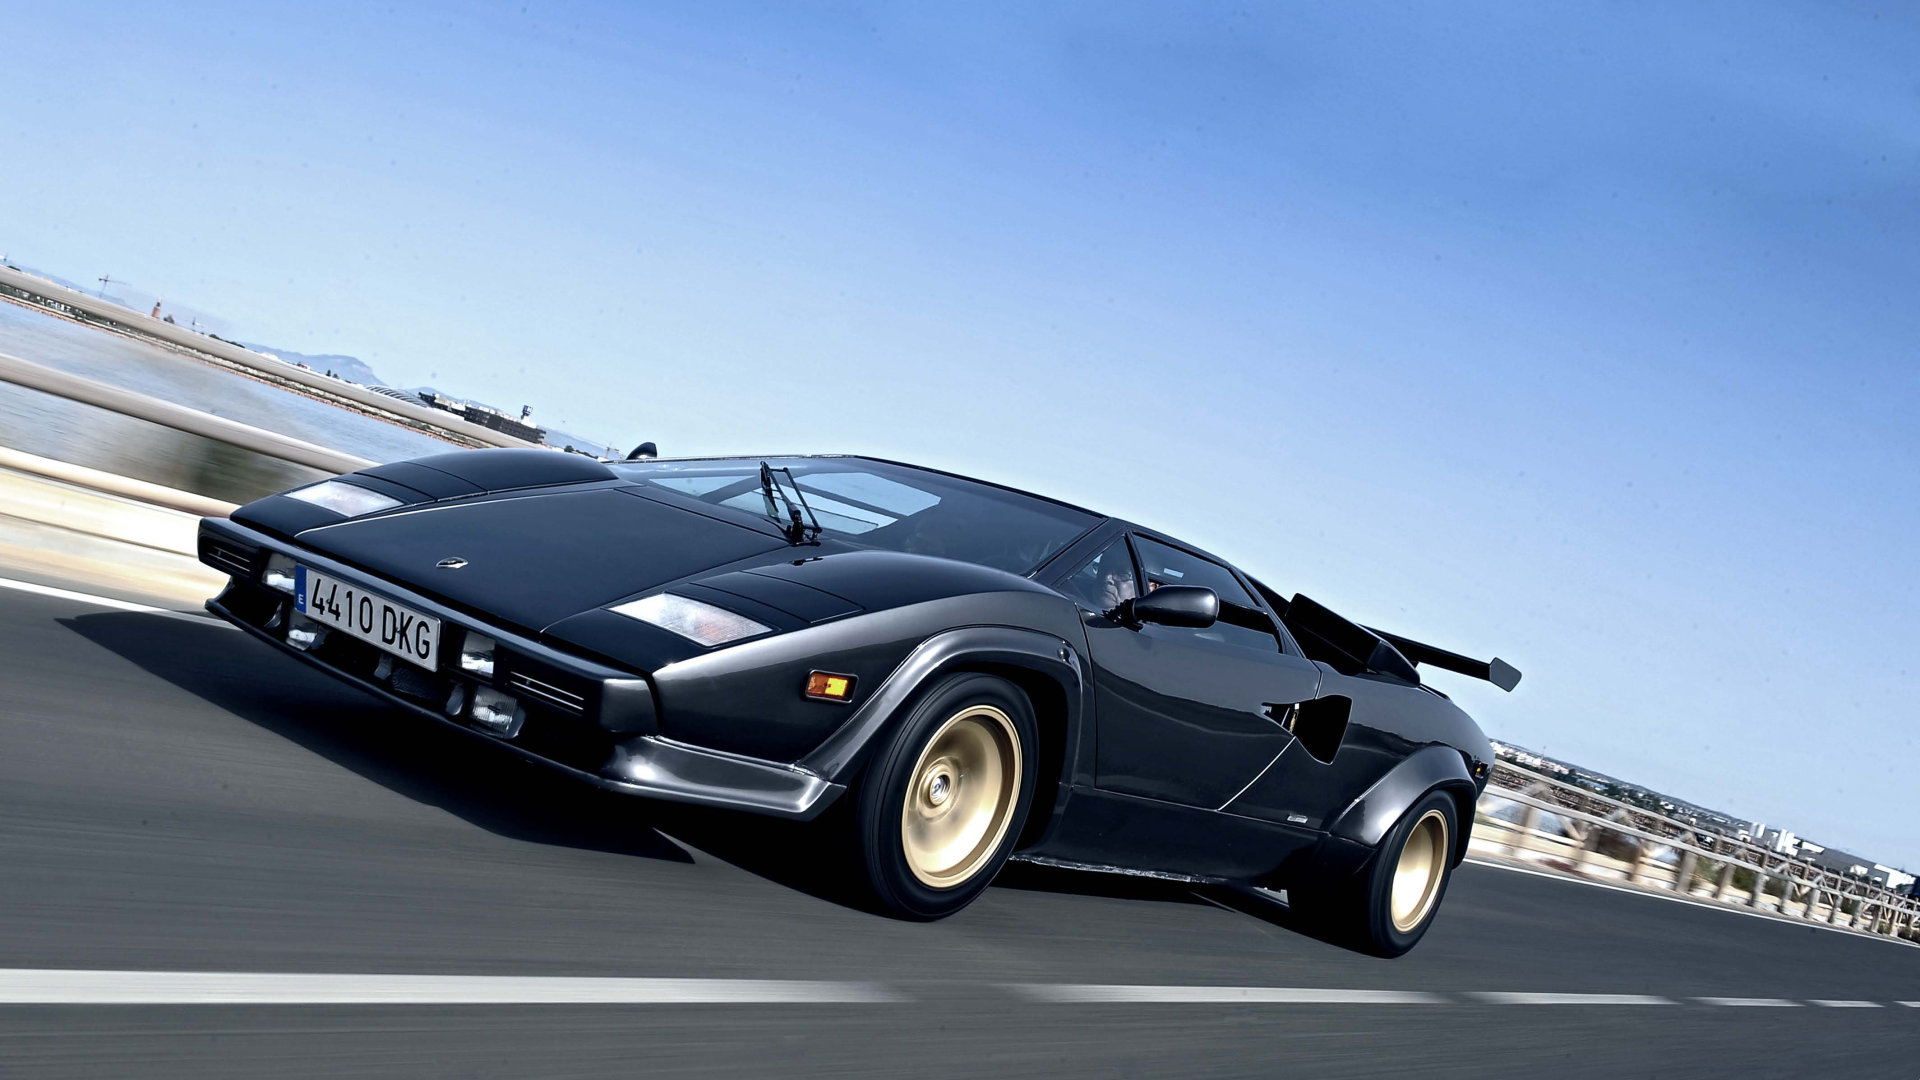 lamborghini countach full hd wallpaper and background 1920x1080 id 631491. Black Bedroom Furniture Sets. Home Design Ideas